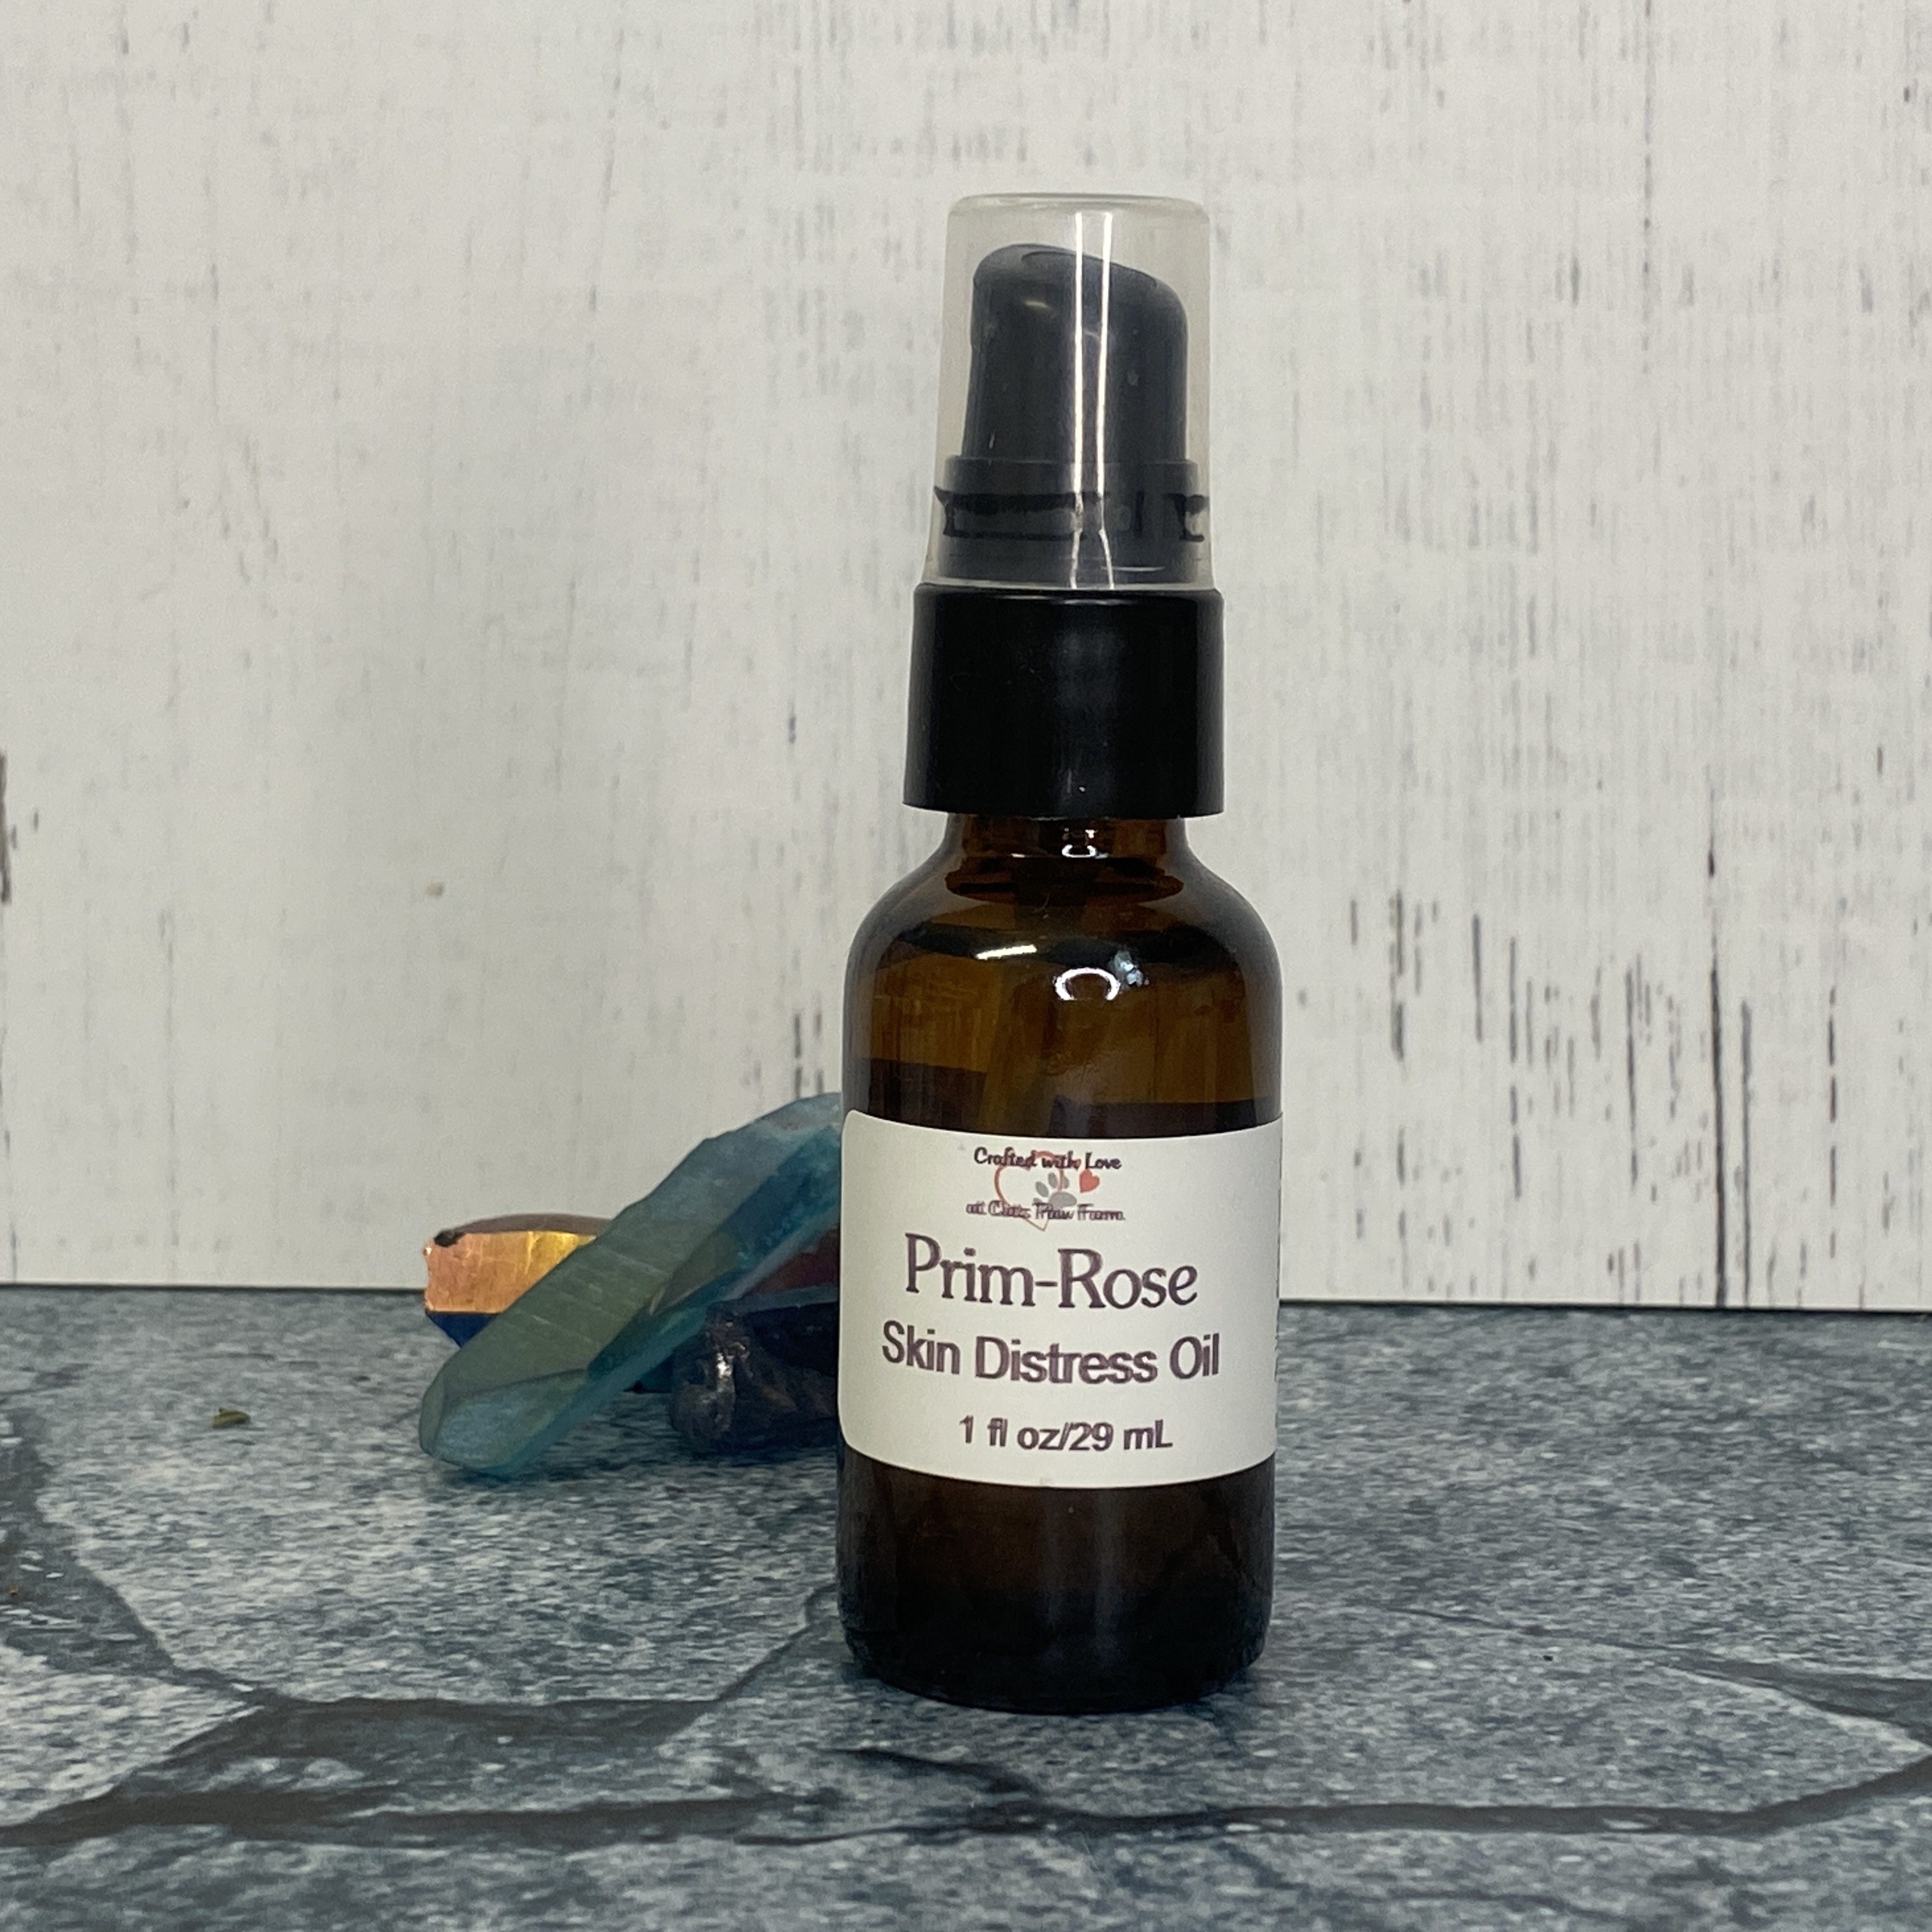 Prim-Rose Skin Distress Oil